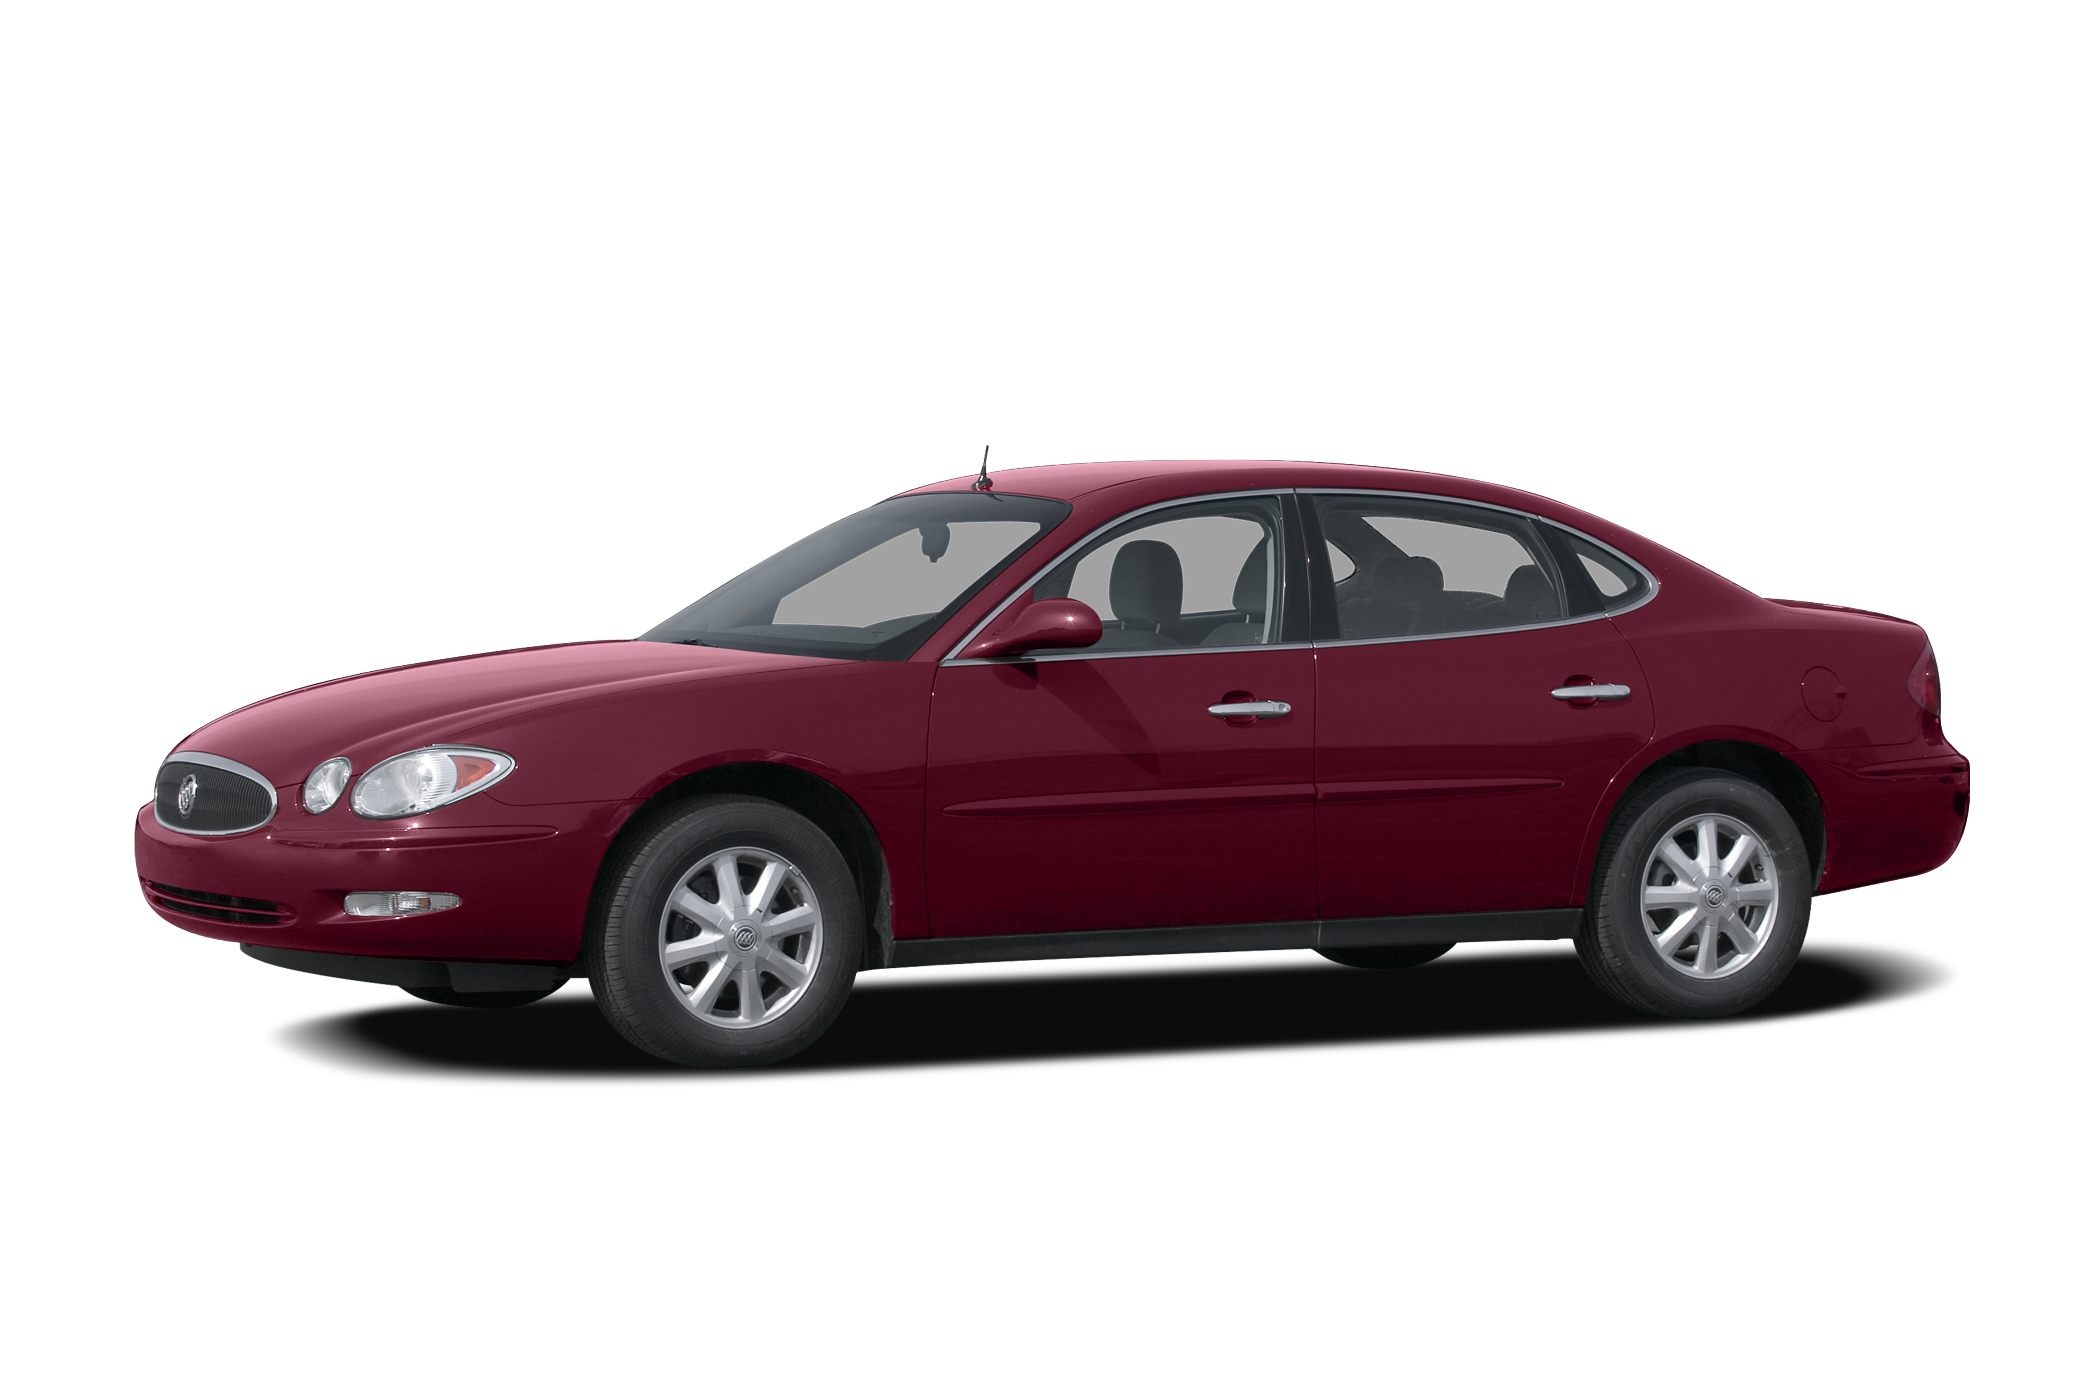 2007 Buick LaCrosse CX ITS OUR 50TH ANNIVERSARY HERE AT MARTYS AND TO CELEBRATE WERE OFFERING THE